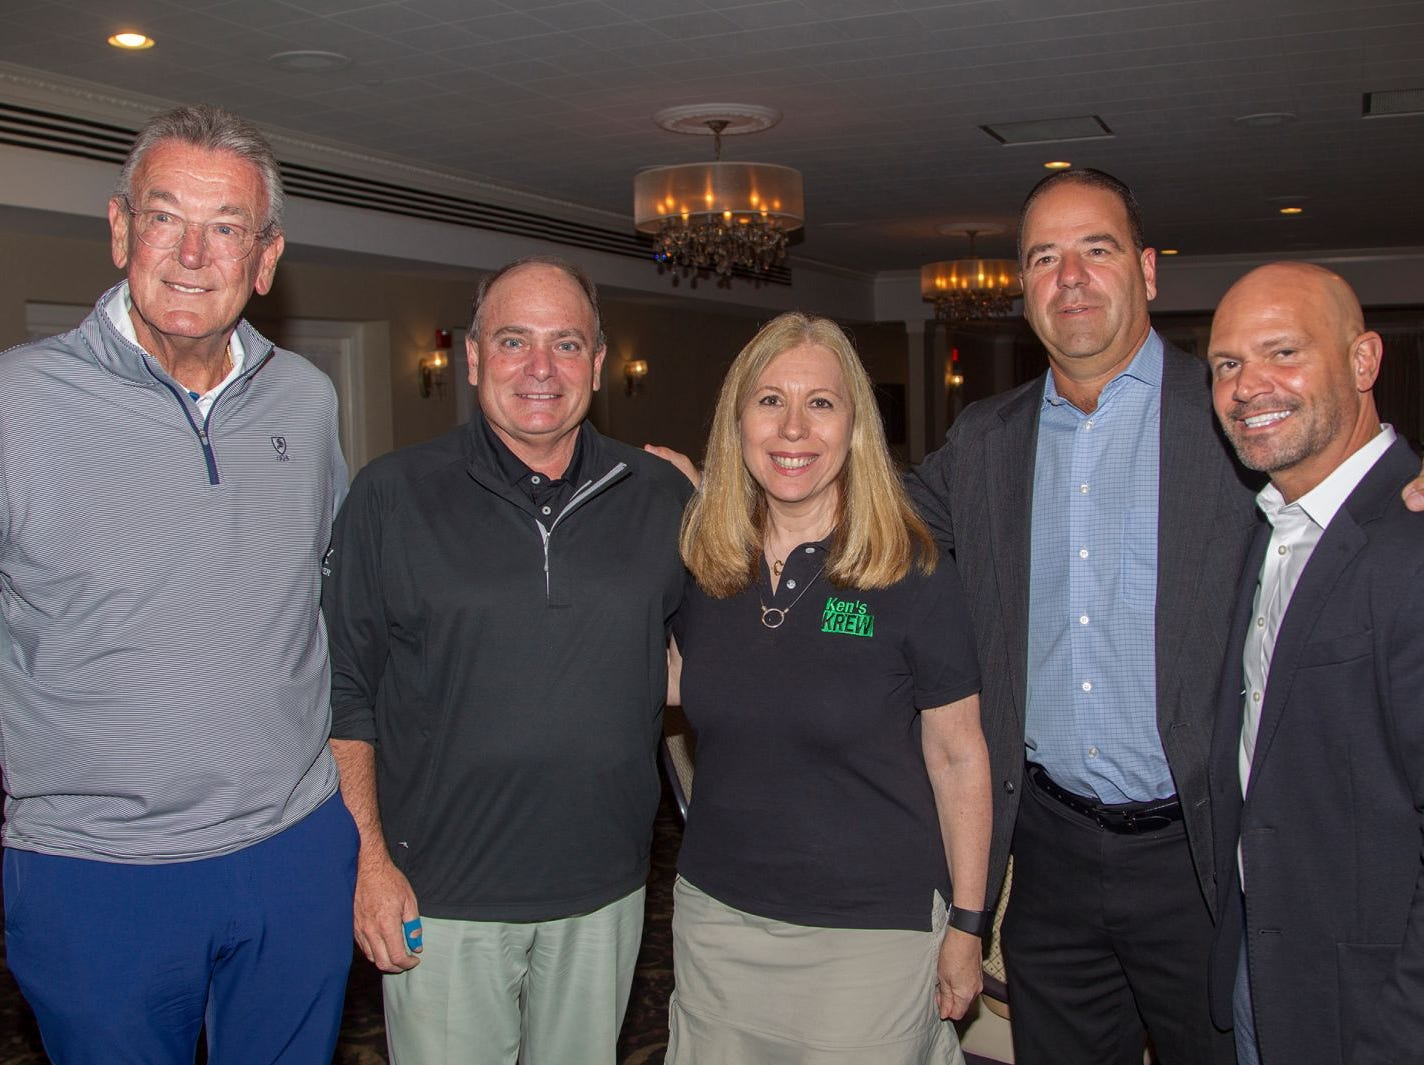 Kevin Hall, Tom Cautle, Suzy Goldberger, Tony Lemma, Paul Lunholm. Ken's Krew Golf Outing at White Beeches Country Club in Haworth. Ken's Krew provides vocational training and job placement services for young adults with intellectual and developmental disabilities. 10/09/2018